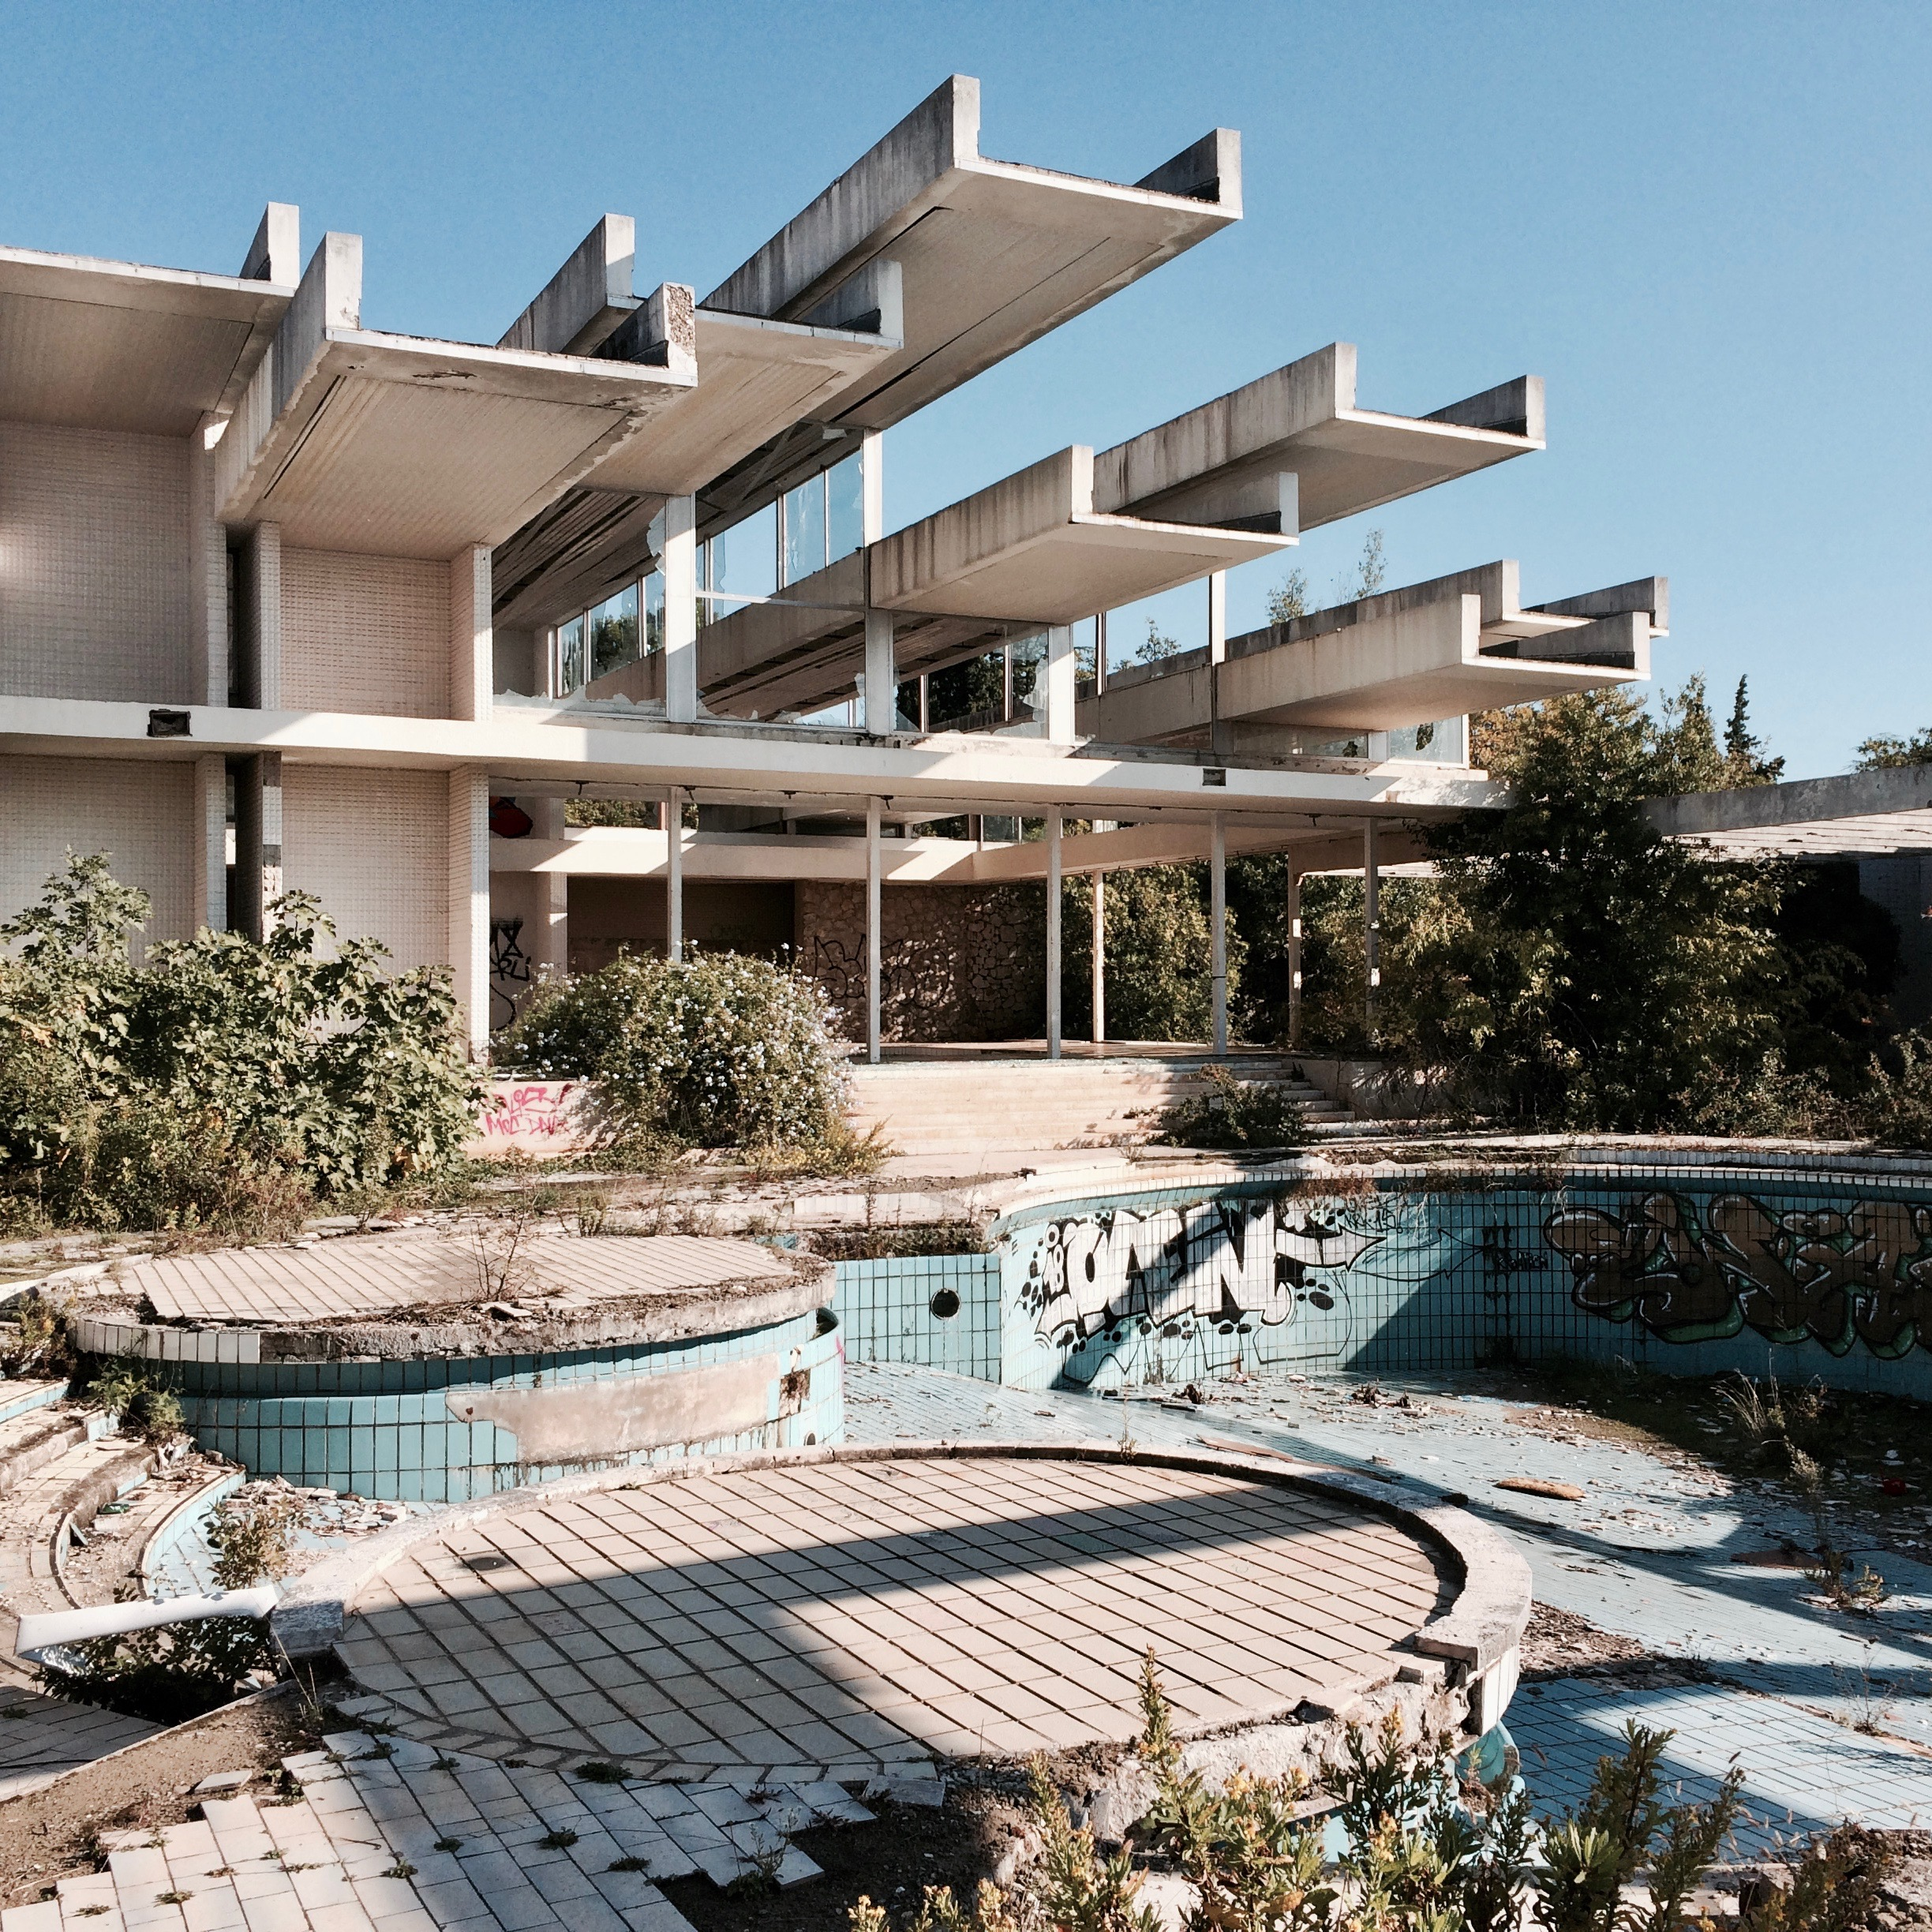 Haludovo Palace Hotel, 1972. Malinska, Island of Krk, Croatia. Designed by Boris Magas.